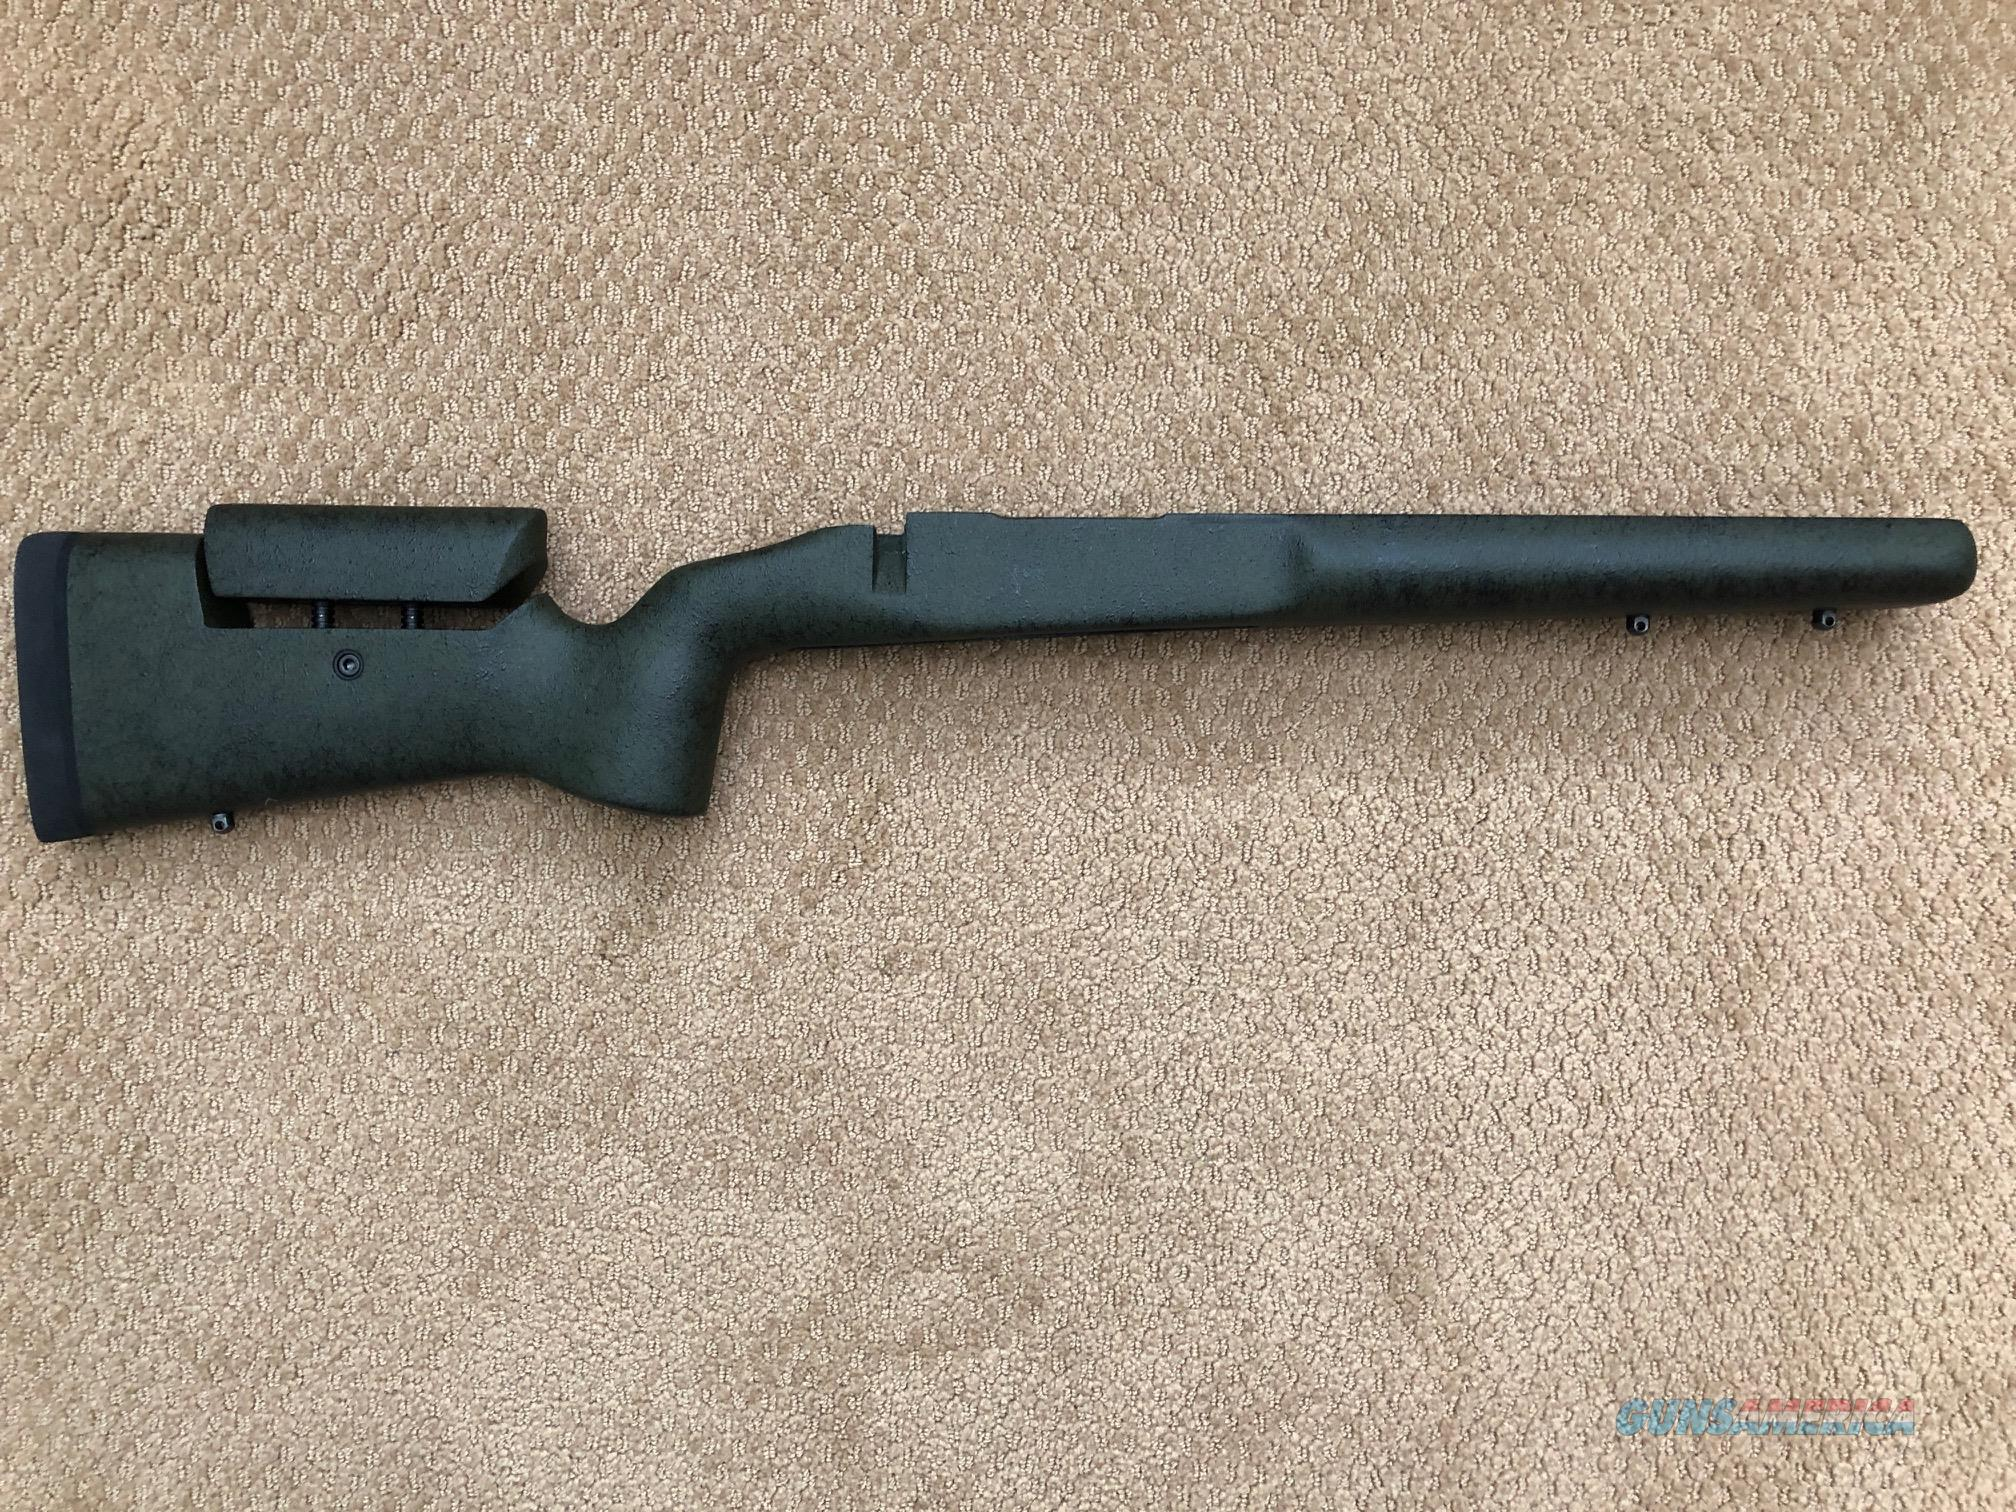 New Bell & Carlson Fiberglass Tactical Varmint Stock for Howa / Wby Vanguard Short Action  Non-Guns > Gun Parts > Stocks > Polymer